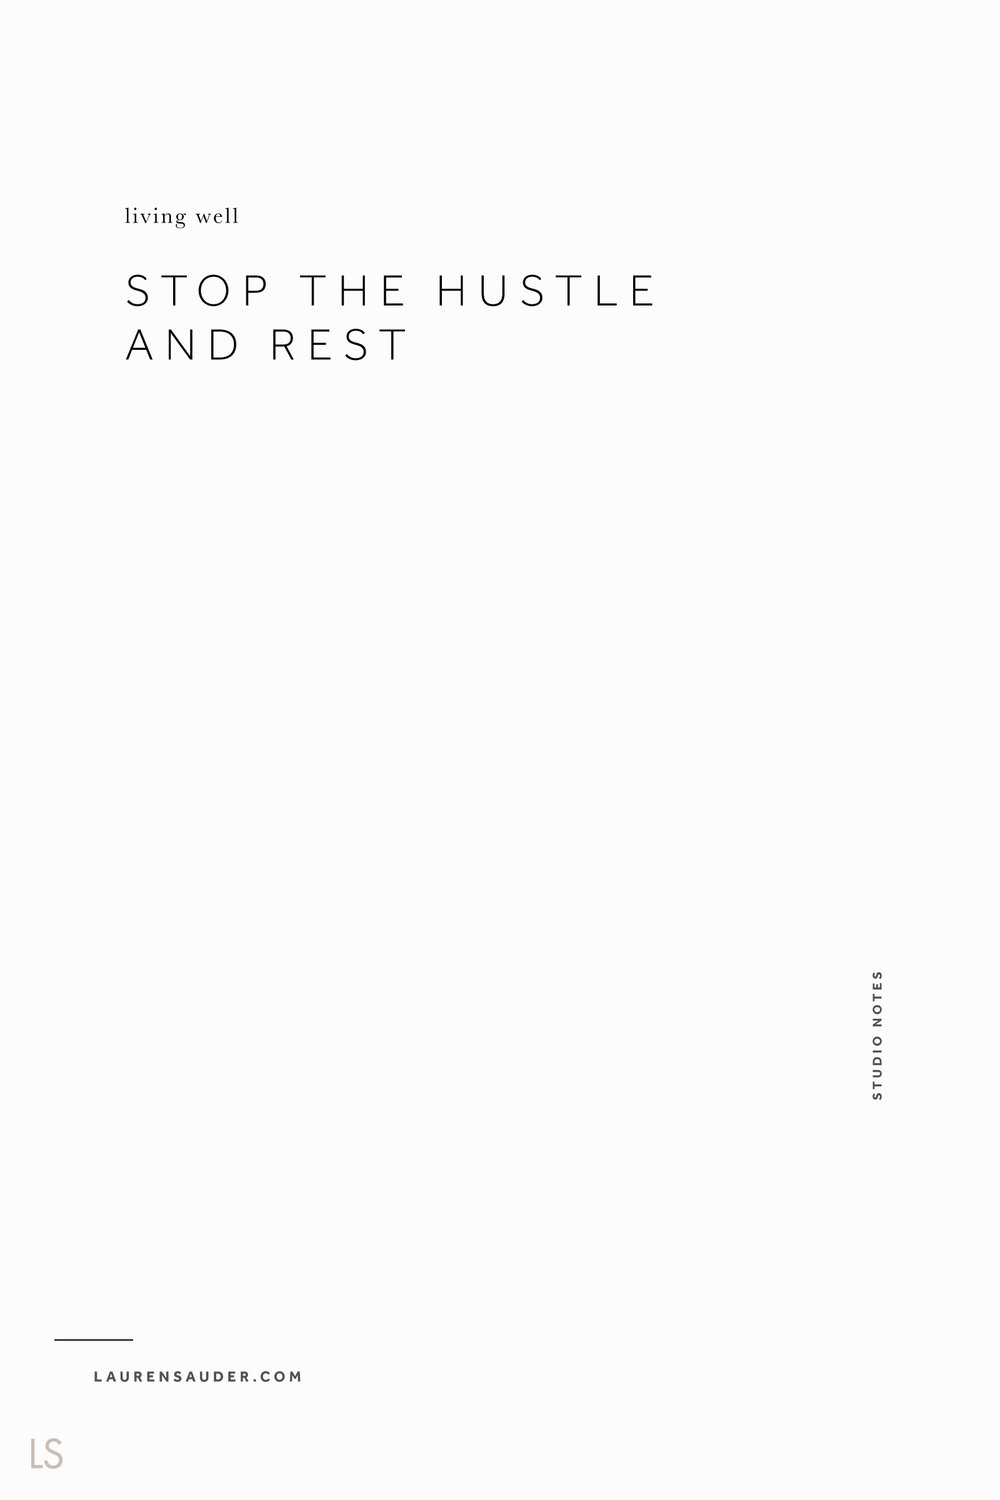 Stop the Hustle and Rest - Lauren Sauder hustle, self care, wellness, slow living, mindfulness, gratitude